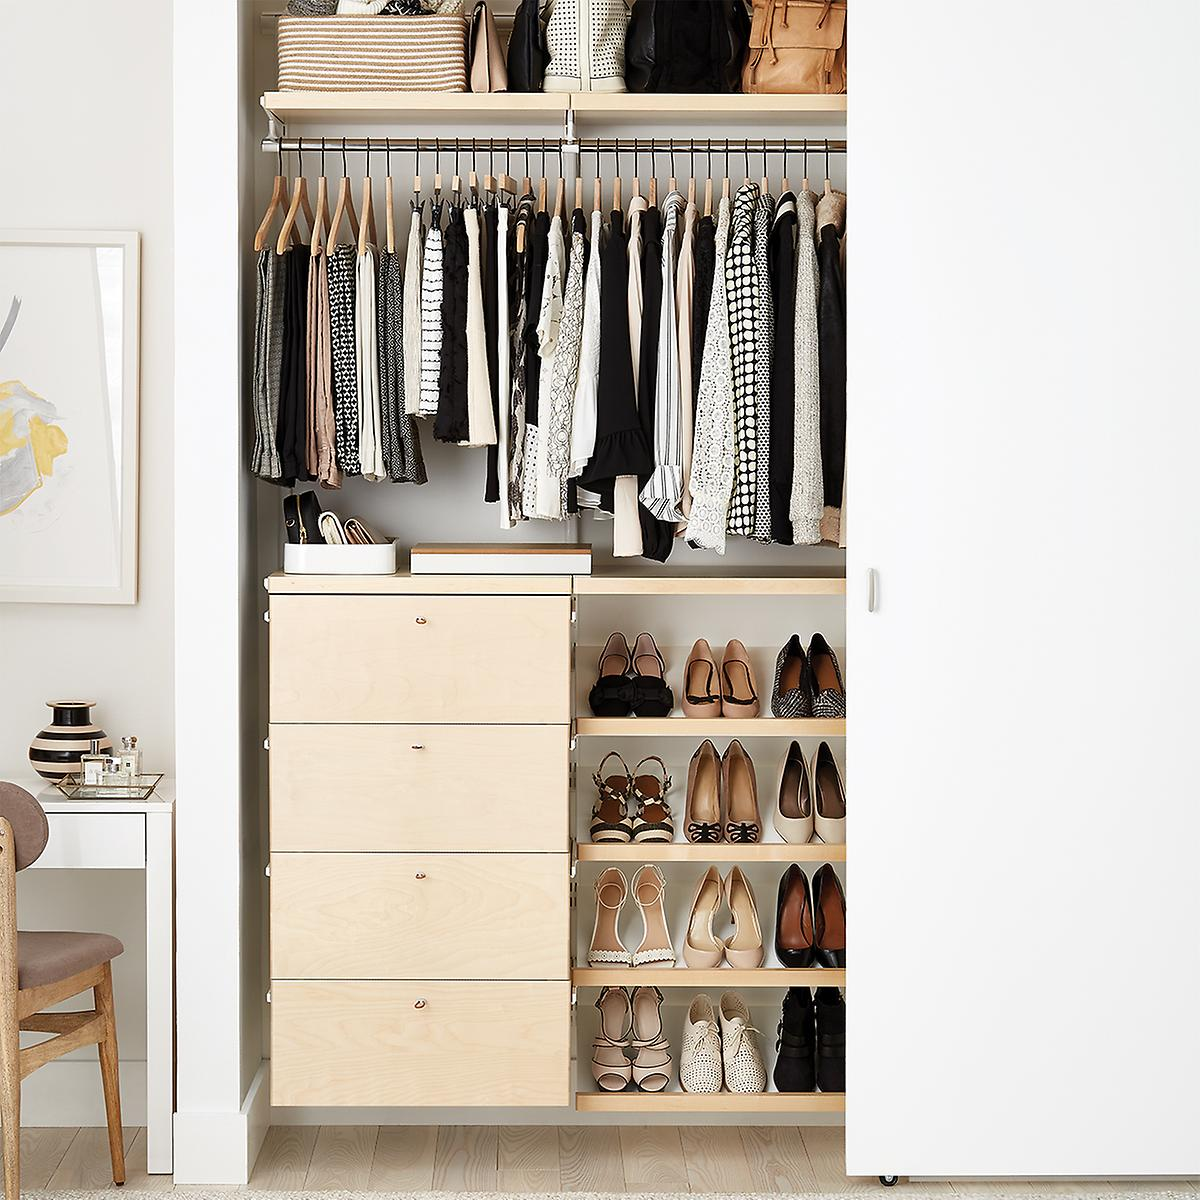 master walk clothes storage size spaces designs for door ideas pictures deep in closet of design plans layout medium reach diy bedroom small